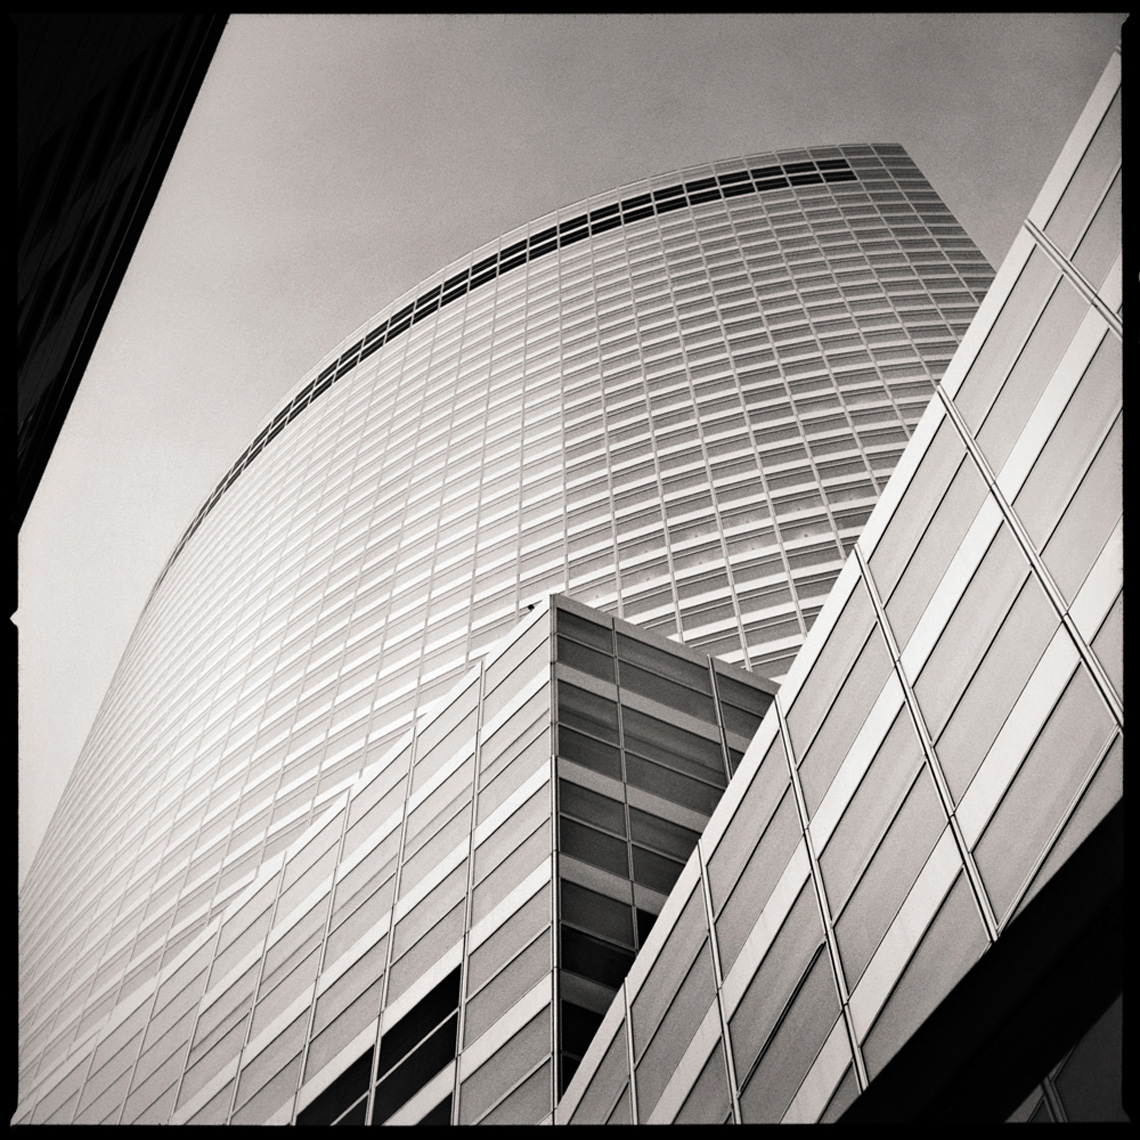 Sean Perry Photographs • Goldman Sachs Tower, from the series Monolith